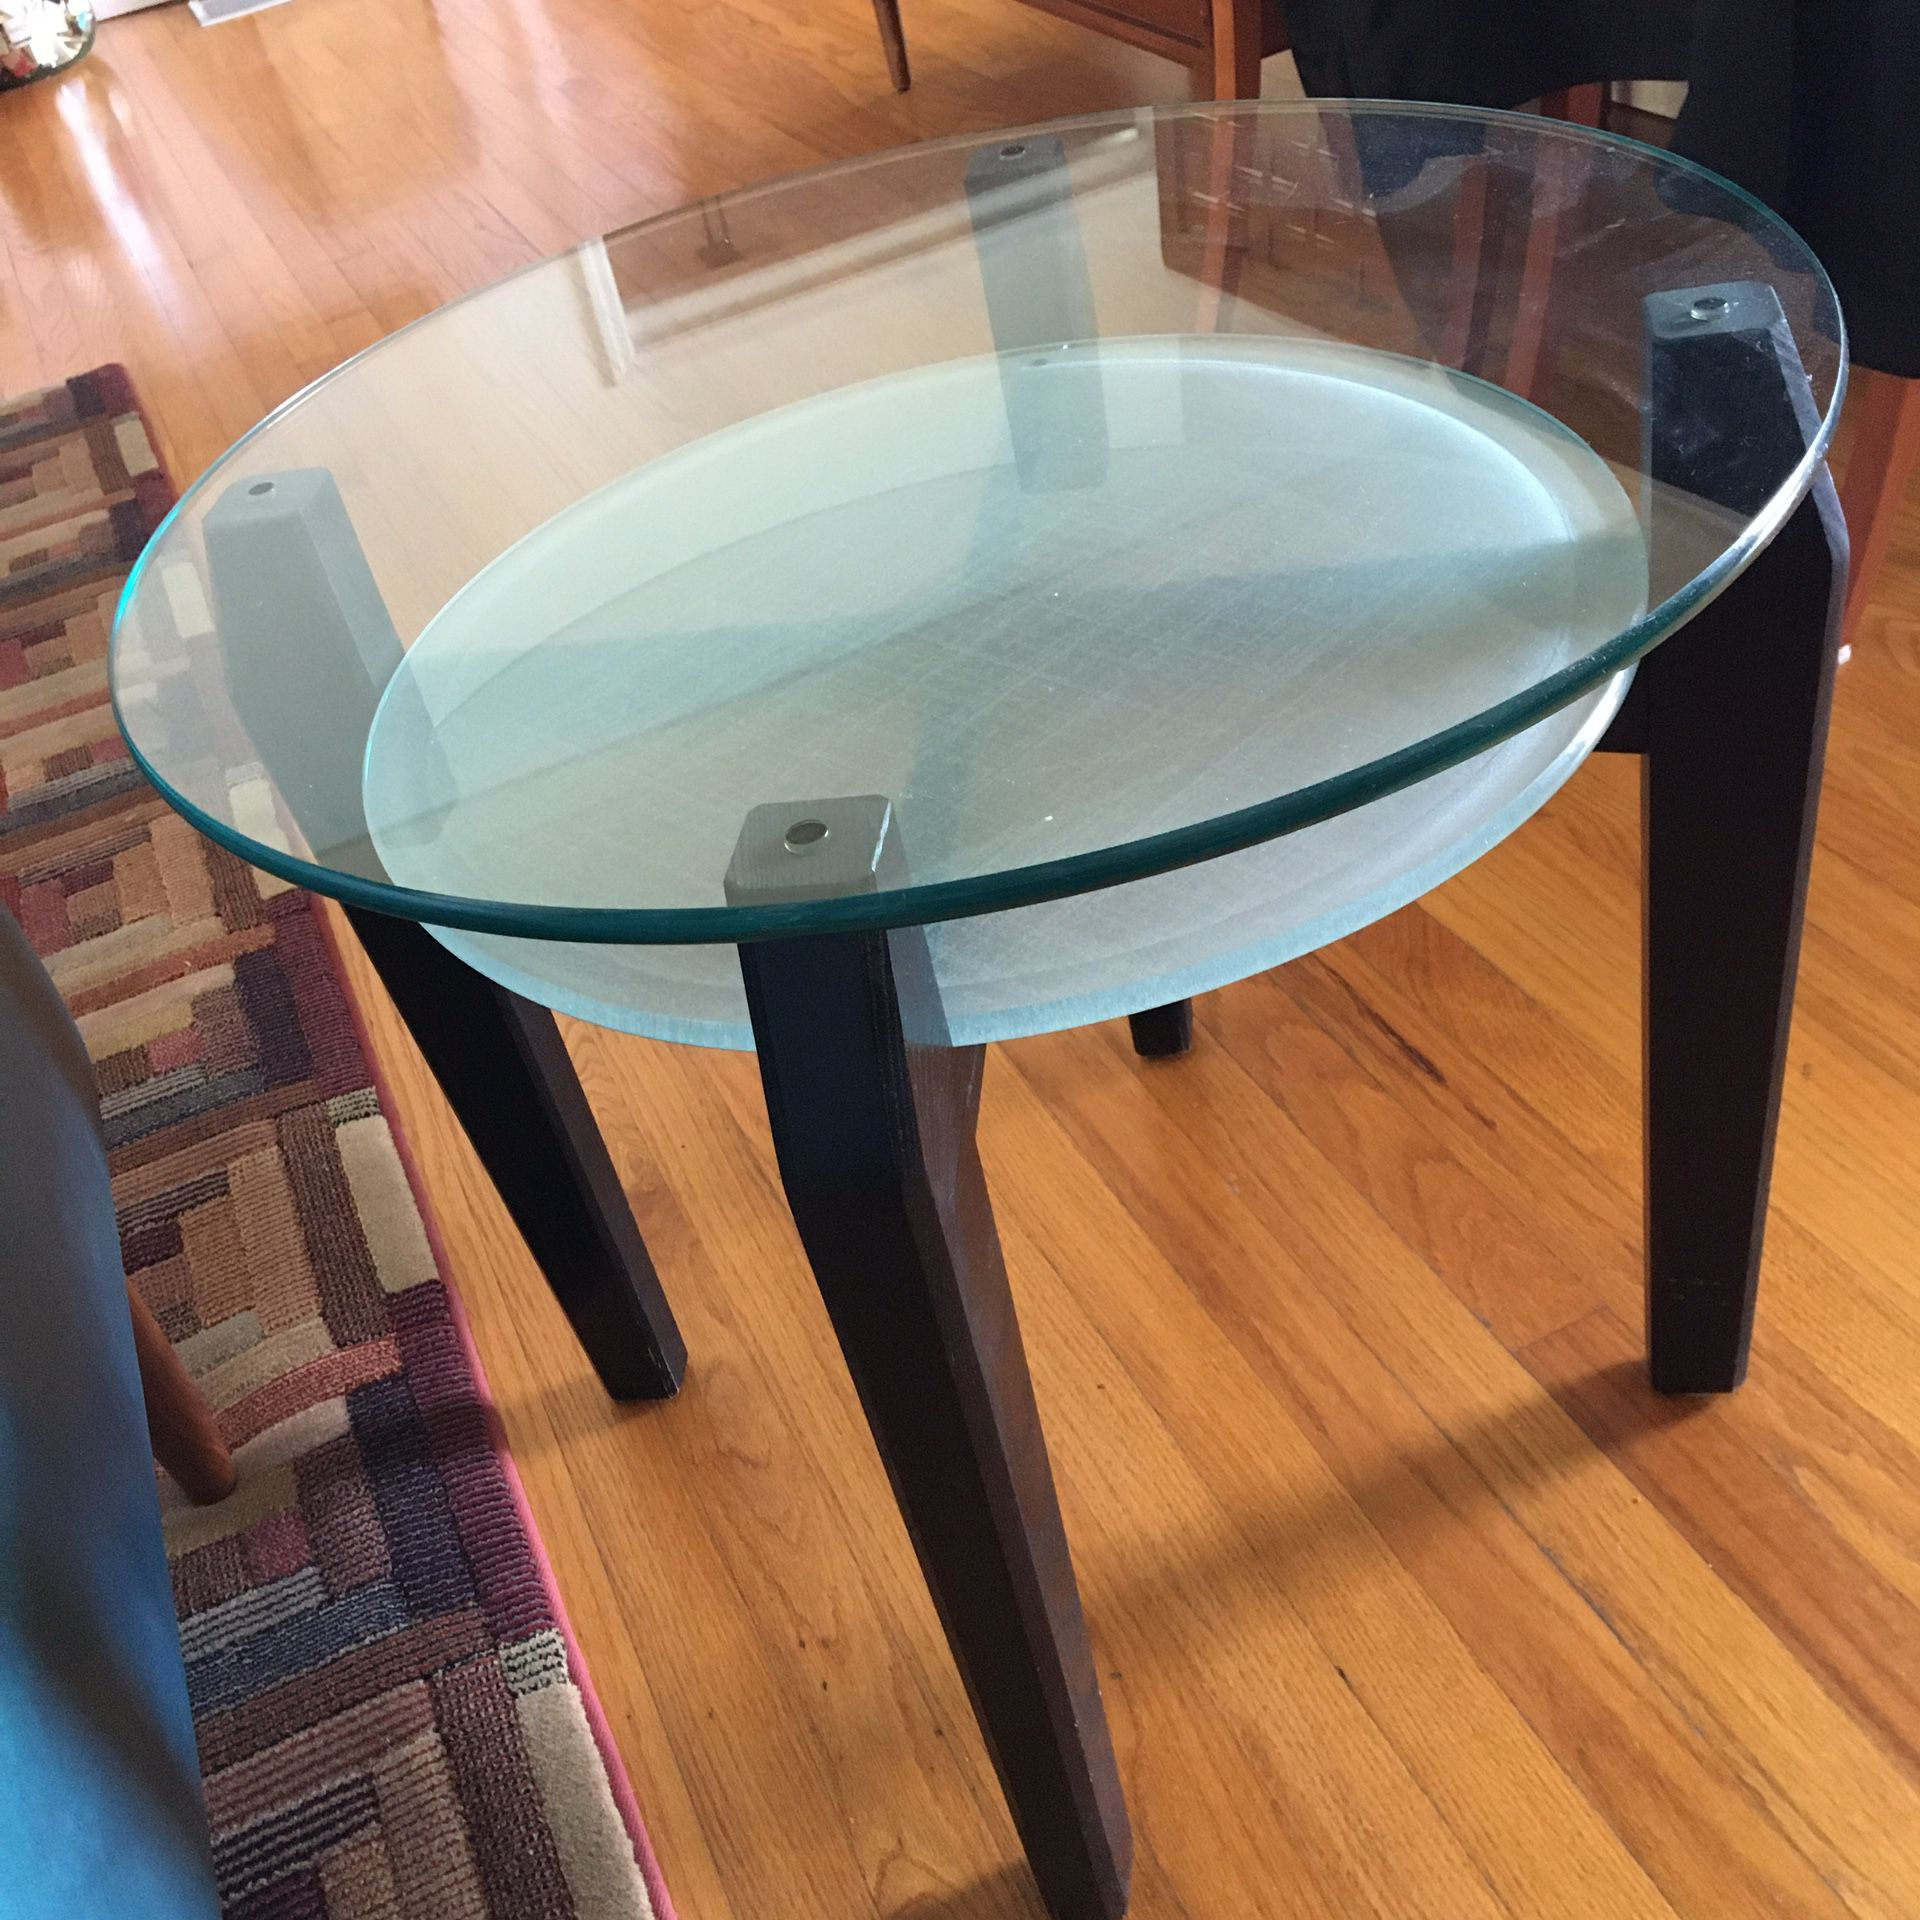 Pair of Round, glass end tables